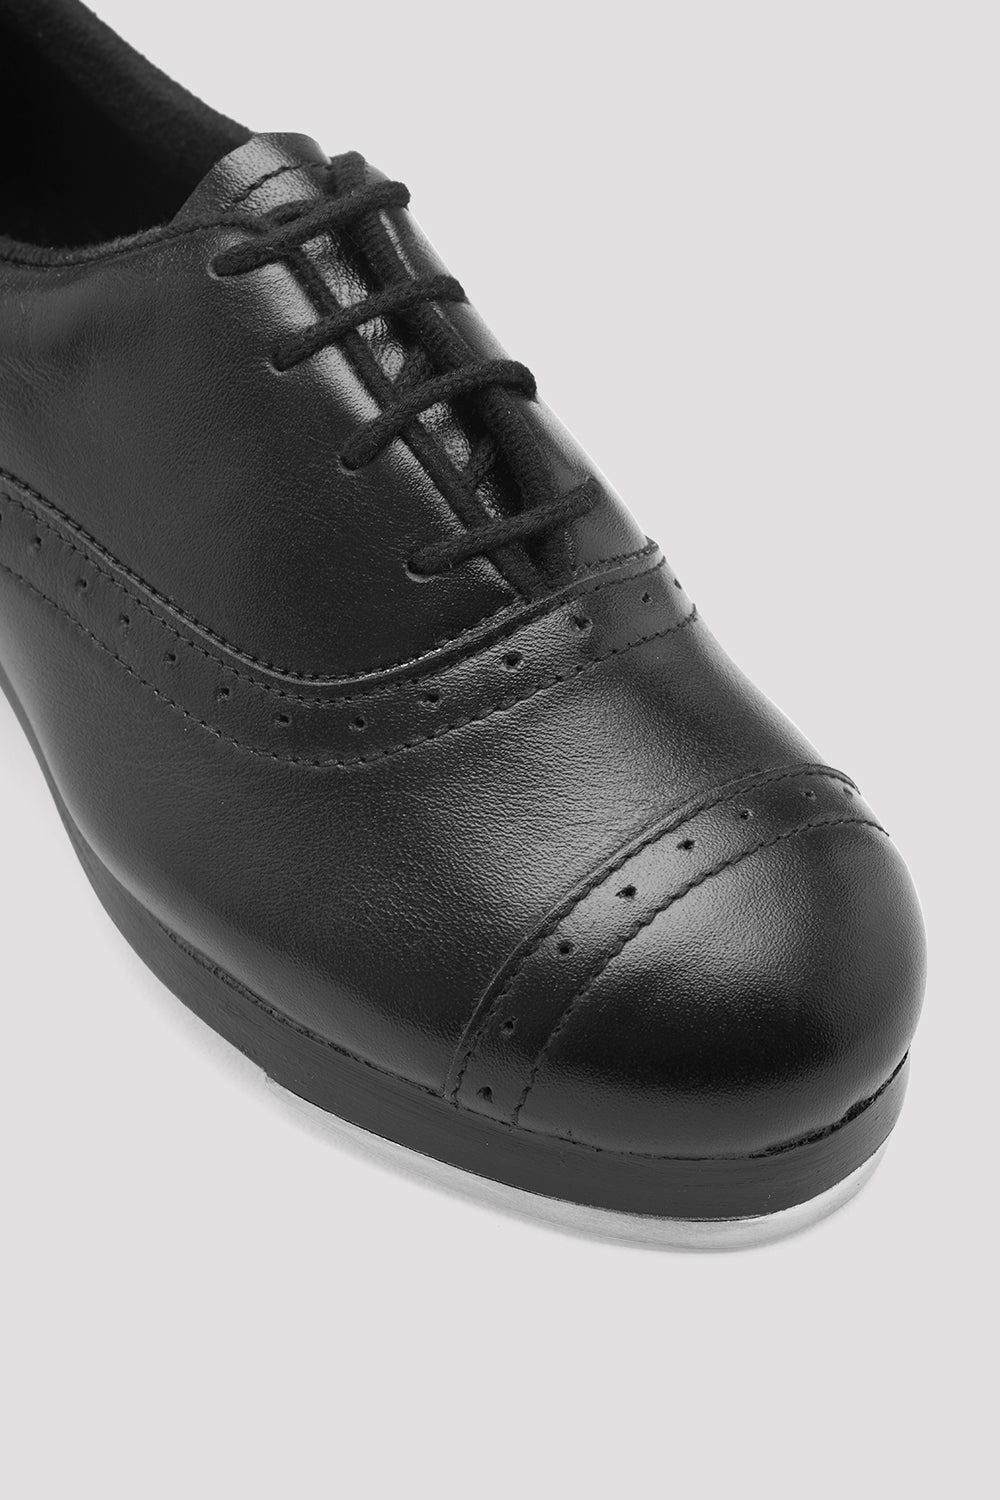 Black leather Bloch Ladies Jason Samuels Smith Tap Shoes single shoe  focus on shoe laces